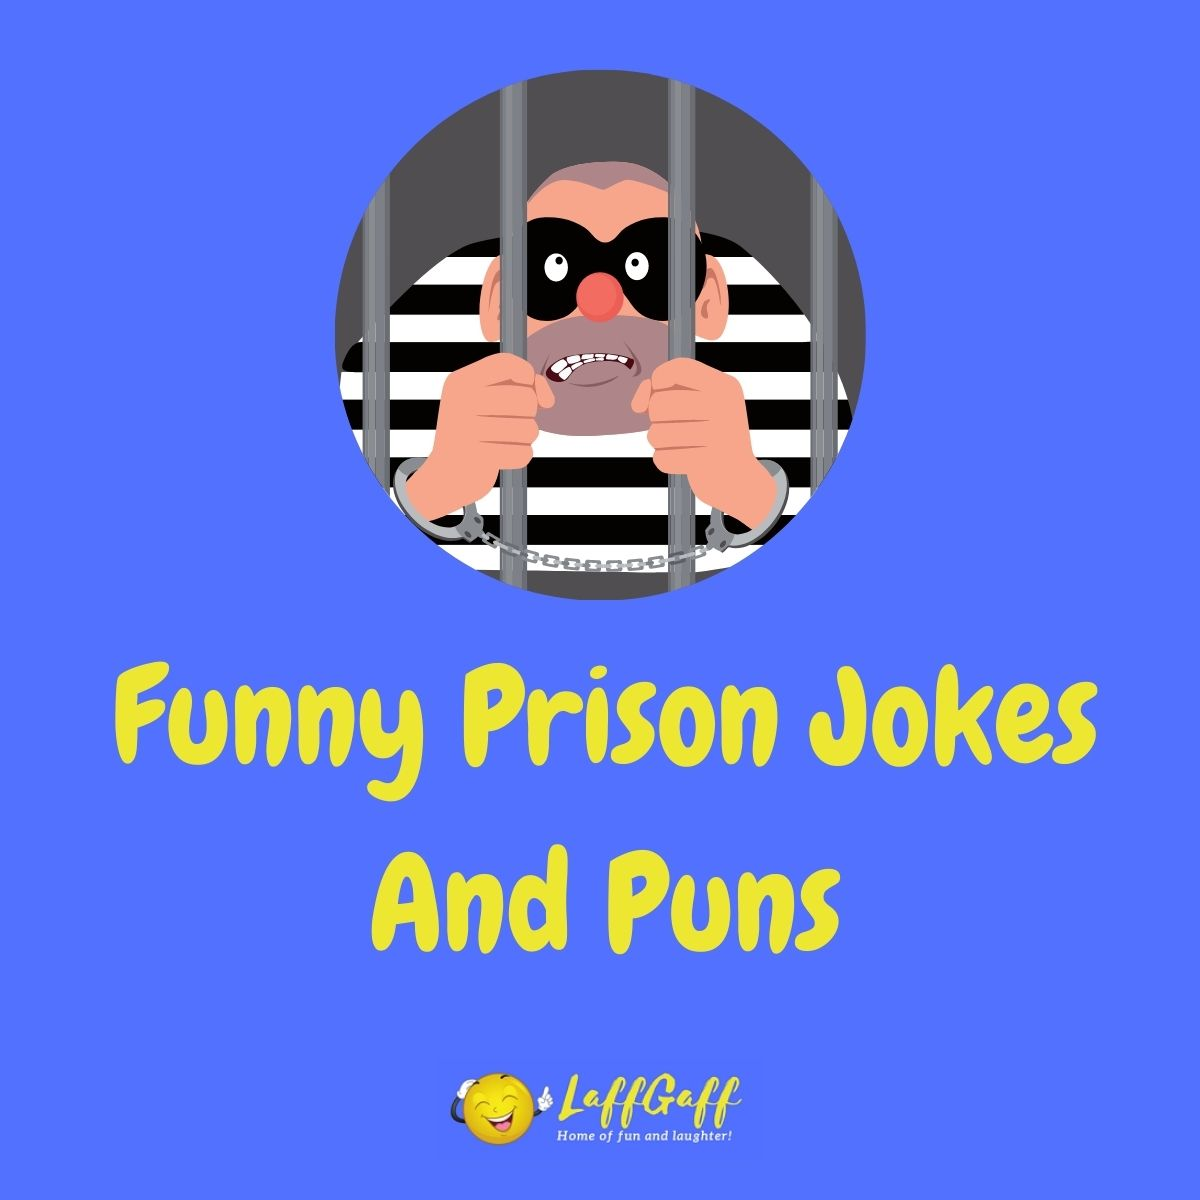 Featured image for a page of funny prison jokes and puns.